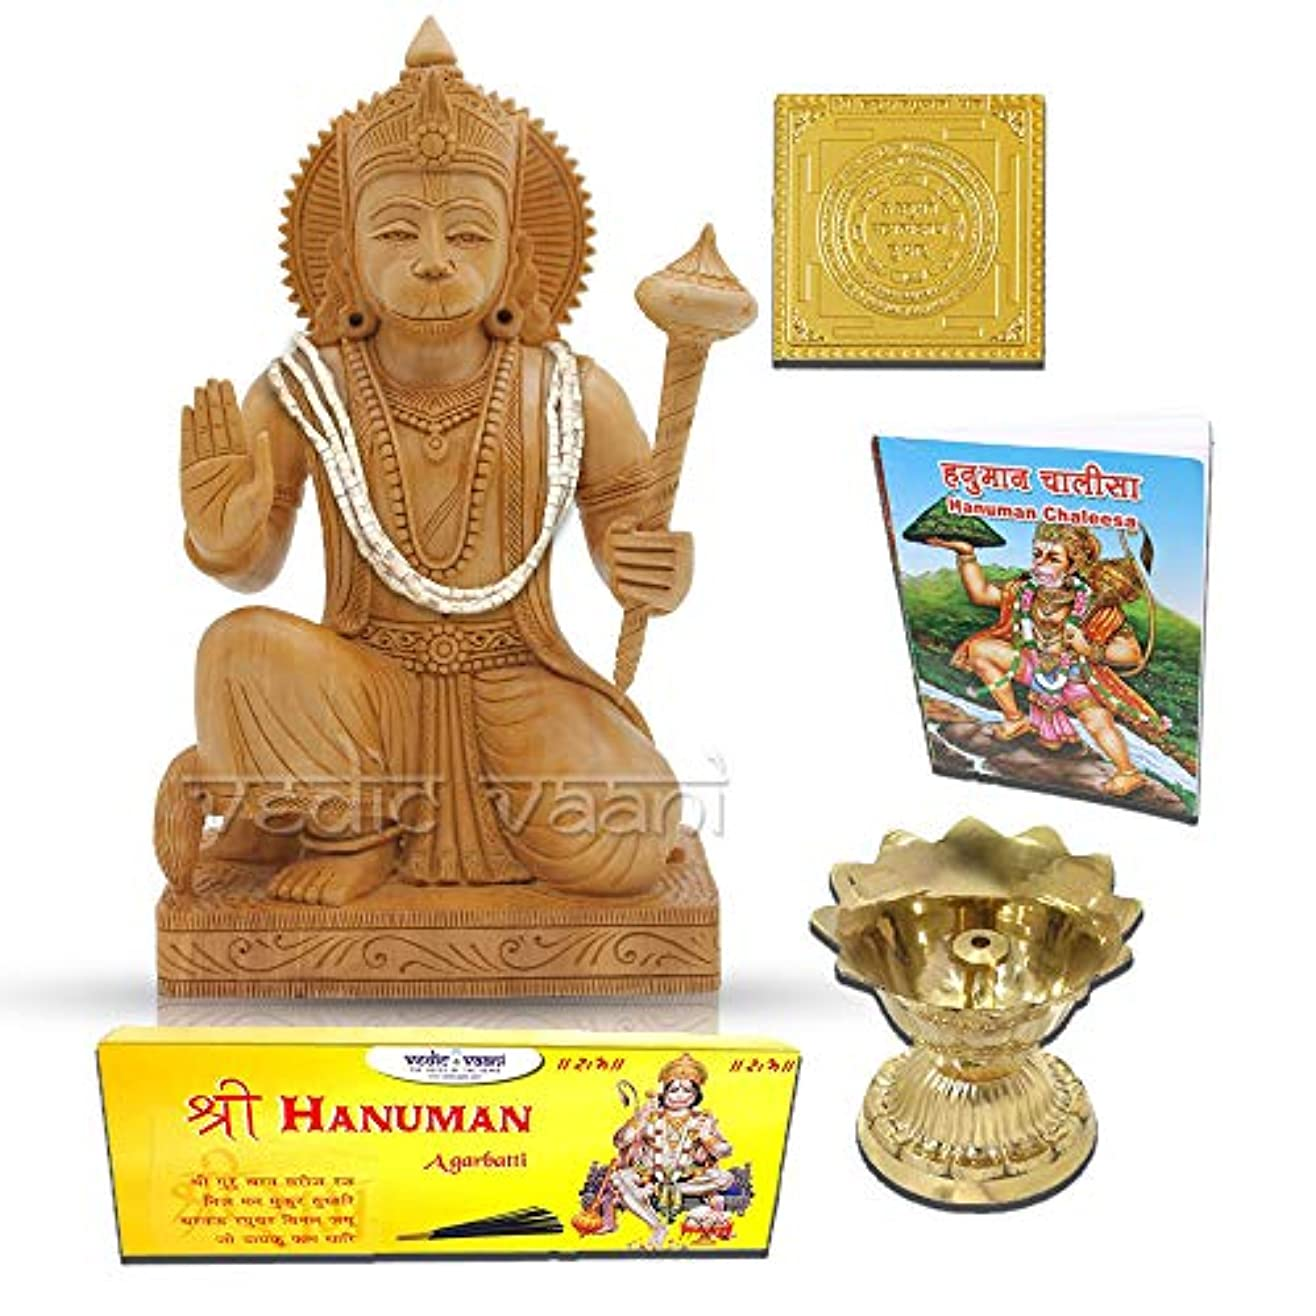 まだら文化航空会社Lord Hanuman木製Statue withヤントラ、Chalisa、Diya and Incense Sticks Vedic Vaani